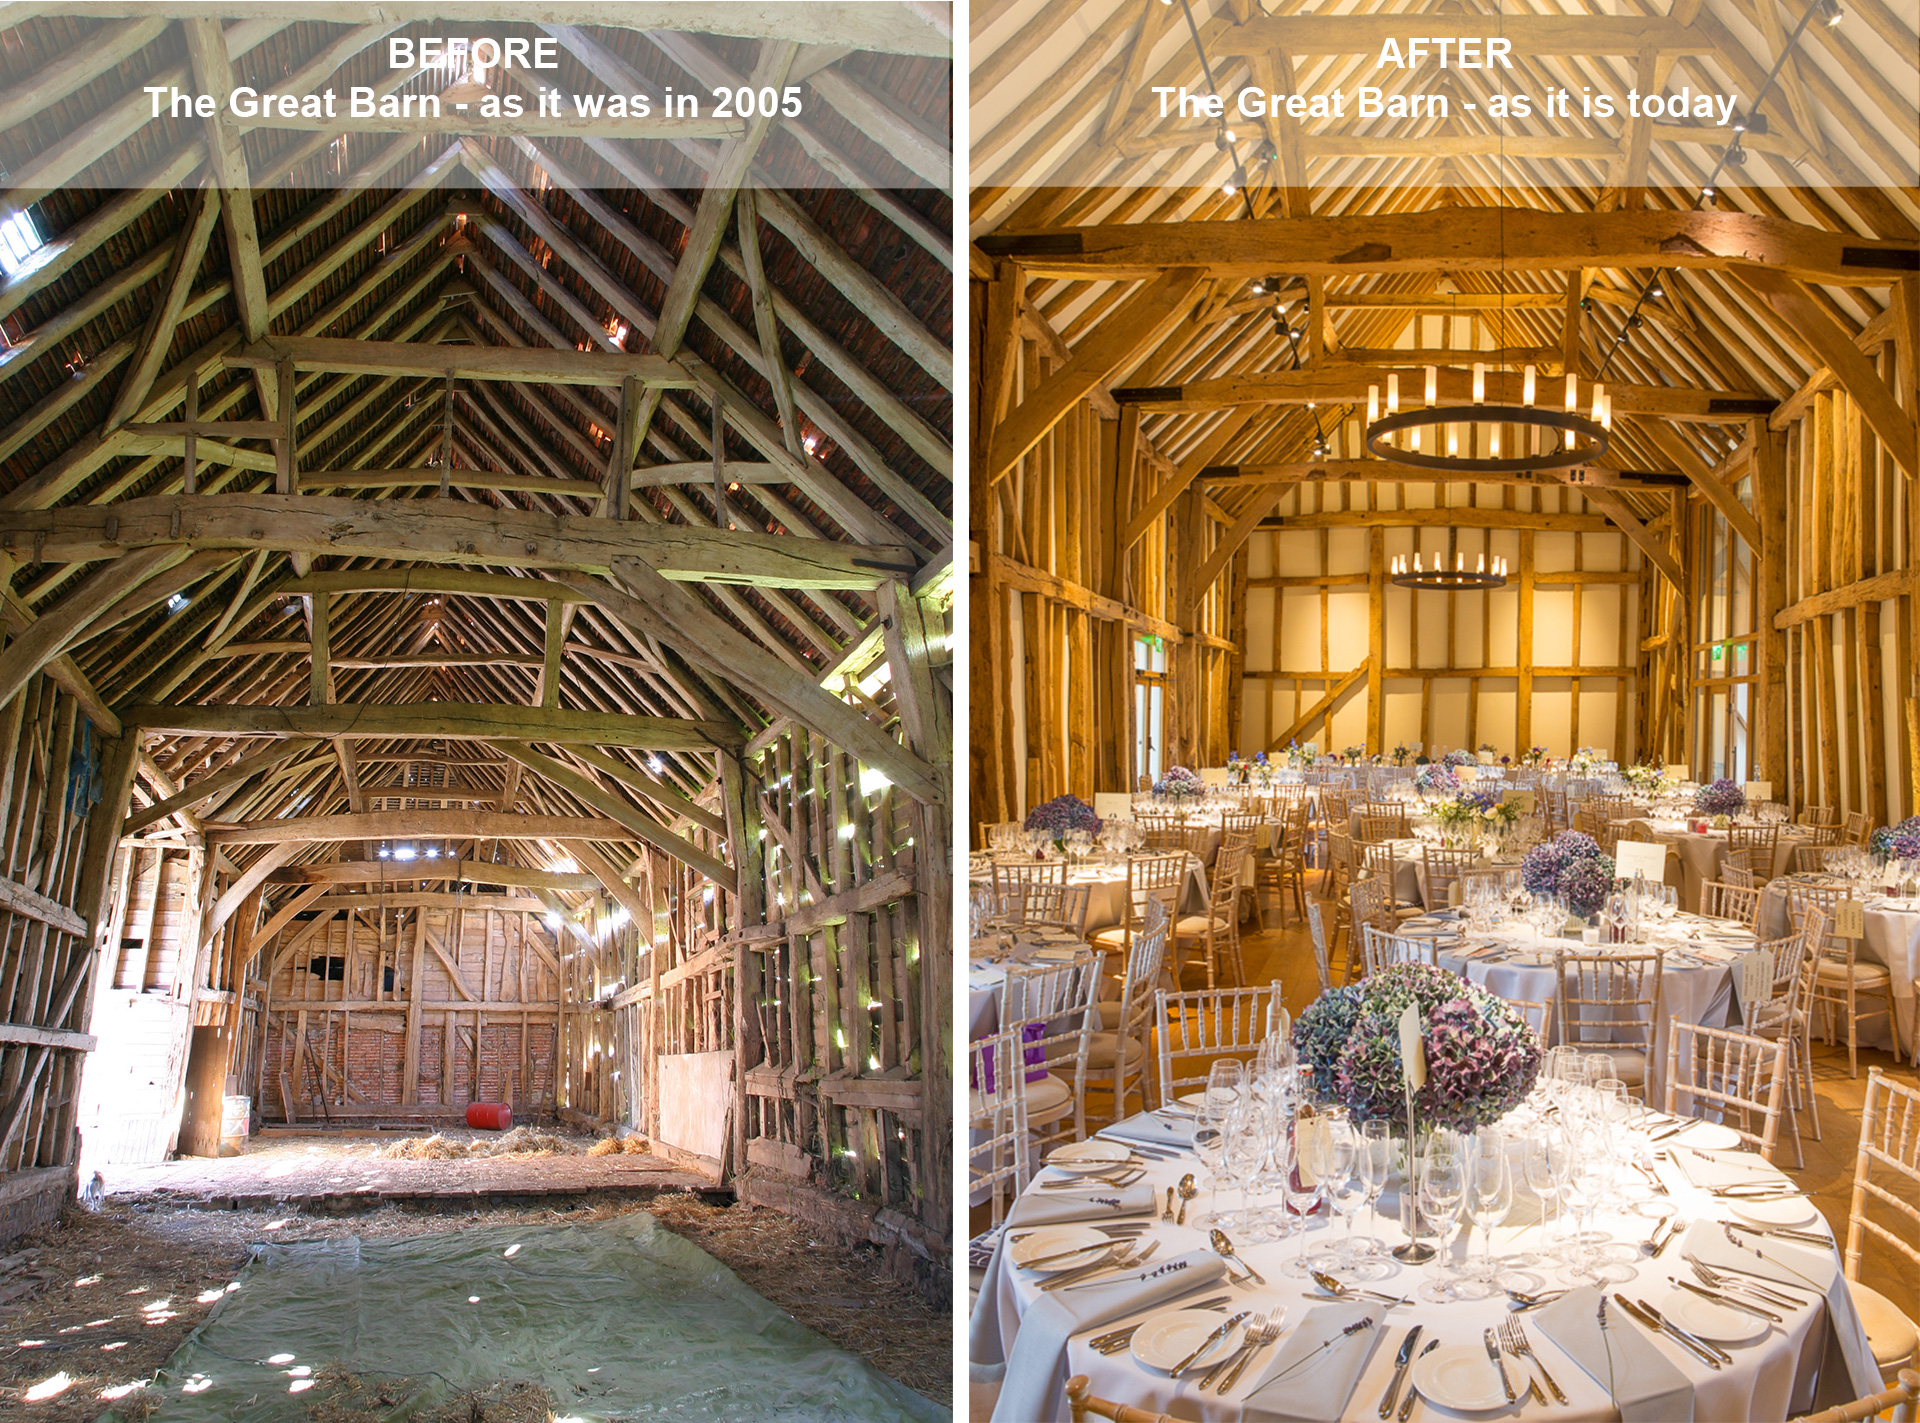 Great Barn, Micklefidl Hall, Before & After | Jon Kempner Photography